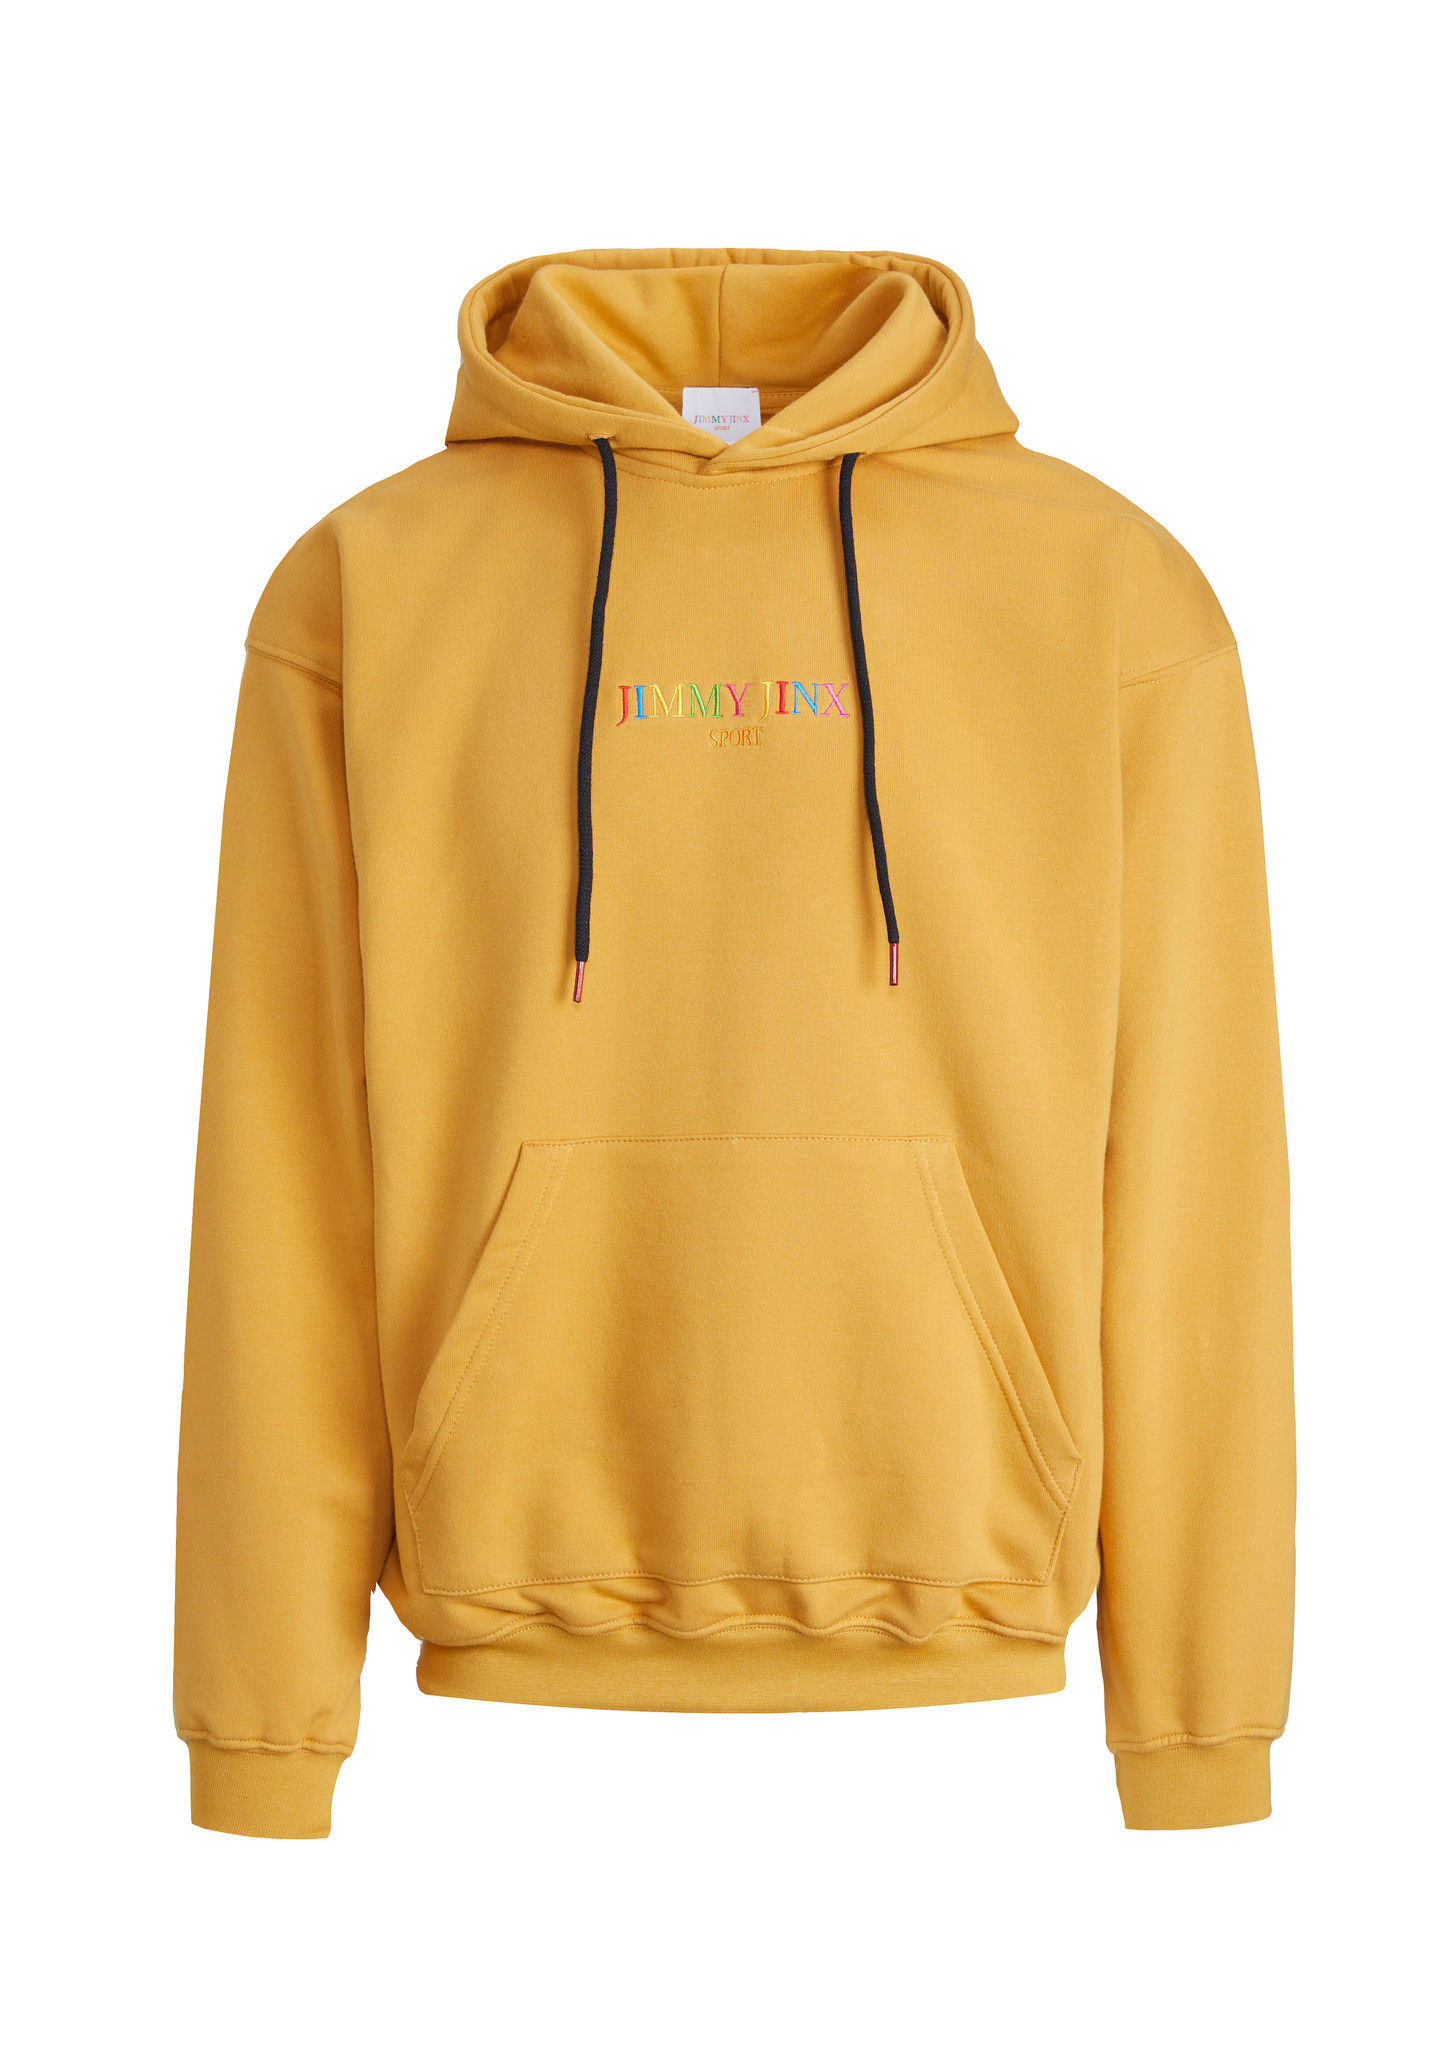 HOODIE 84 HONEY UNISEX - Jimmy Jinx | JestemSlow.pl